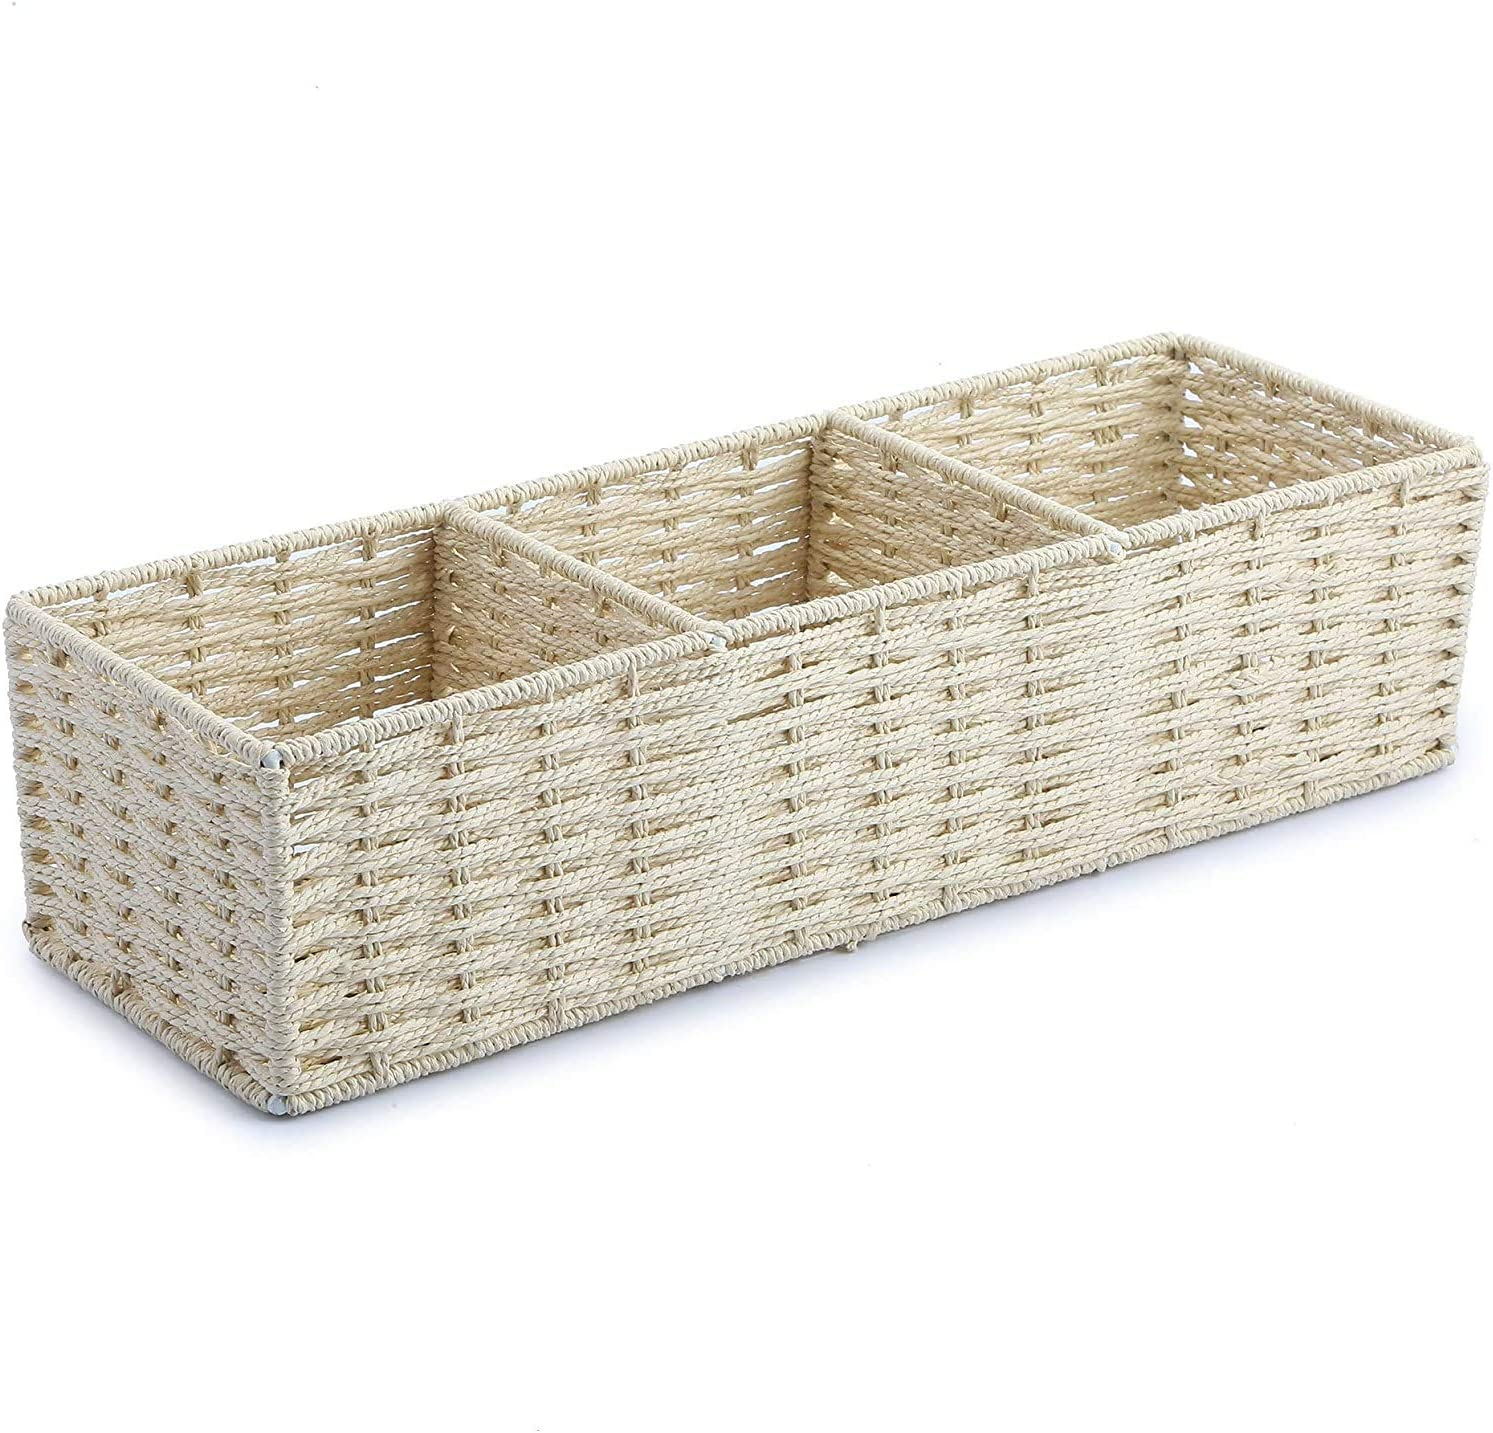 Bathroom Toilet Tank Tray Paper Rectangle Small Basket Organizer, Back of Toilet Storage Towel Woven Paper Rope Baskets Tank Topper for Bathroom Decor Counter Organizer Over the Toilet Storage (White)